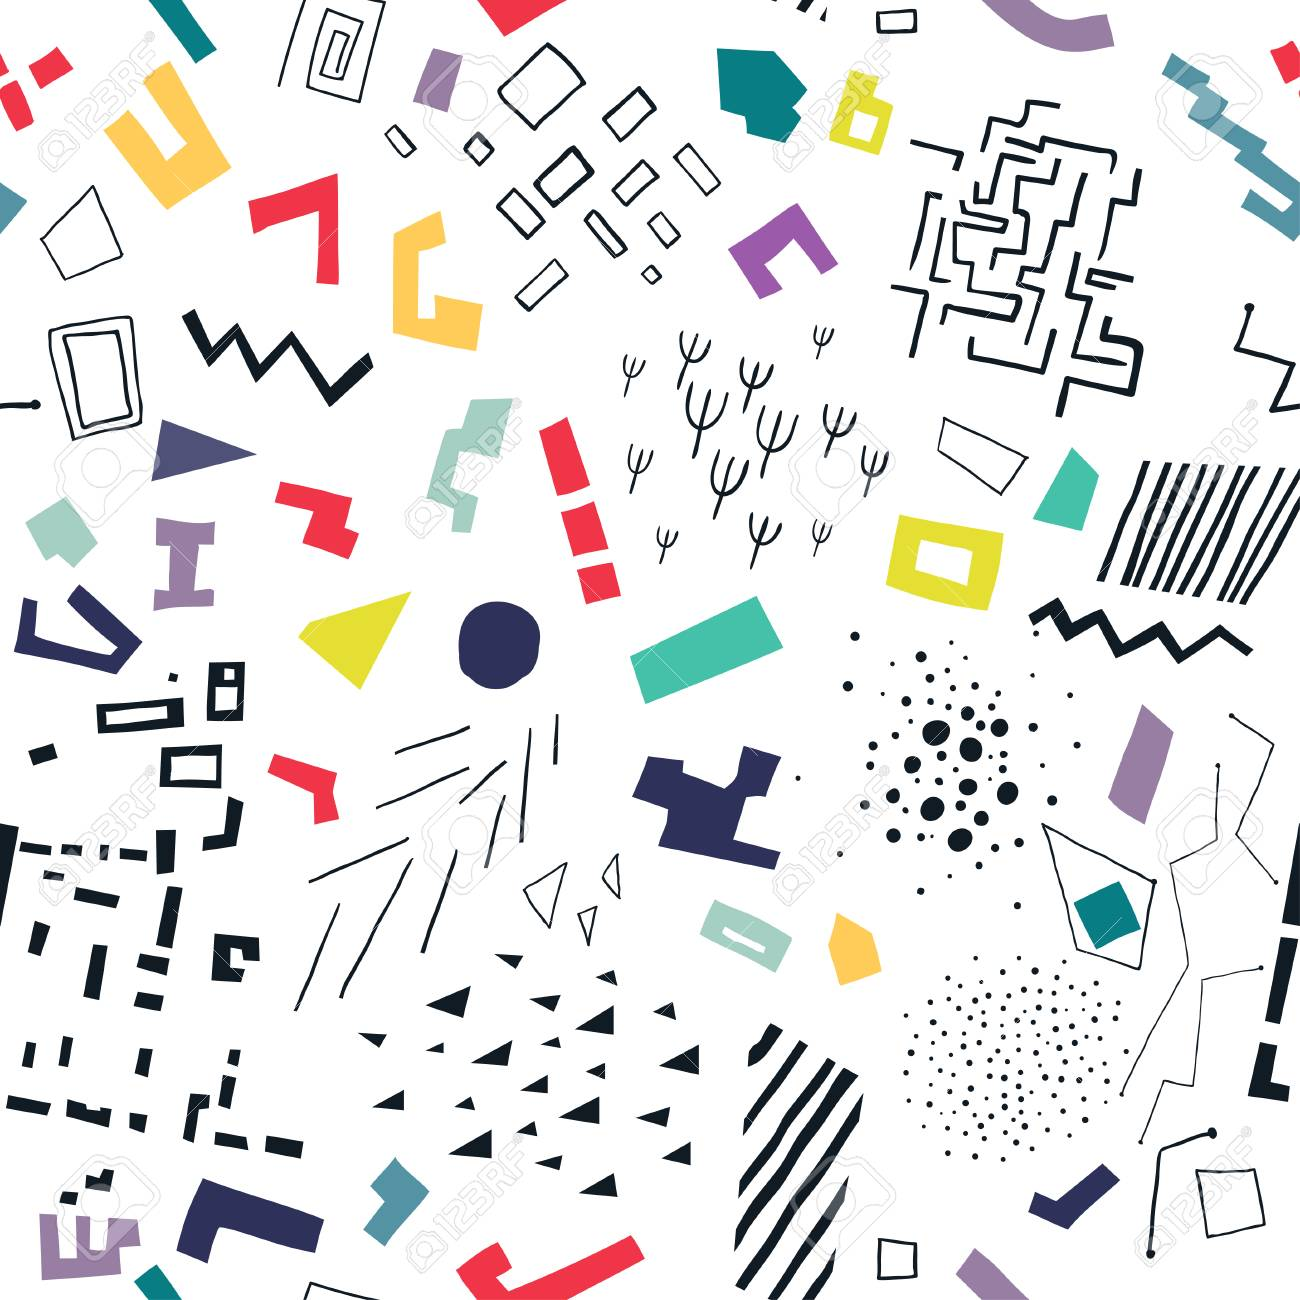 Vector seamless pattern made of colorful flat shapes and black structures. - 118044206